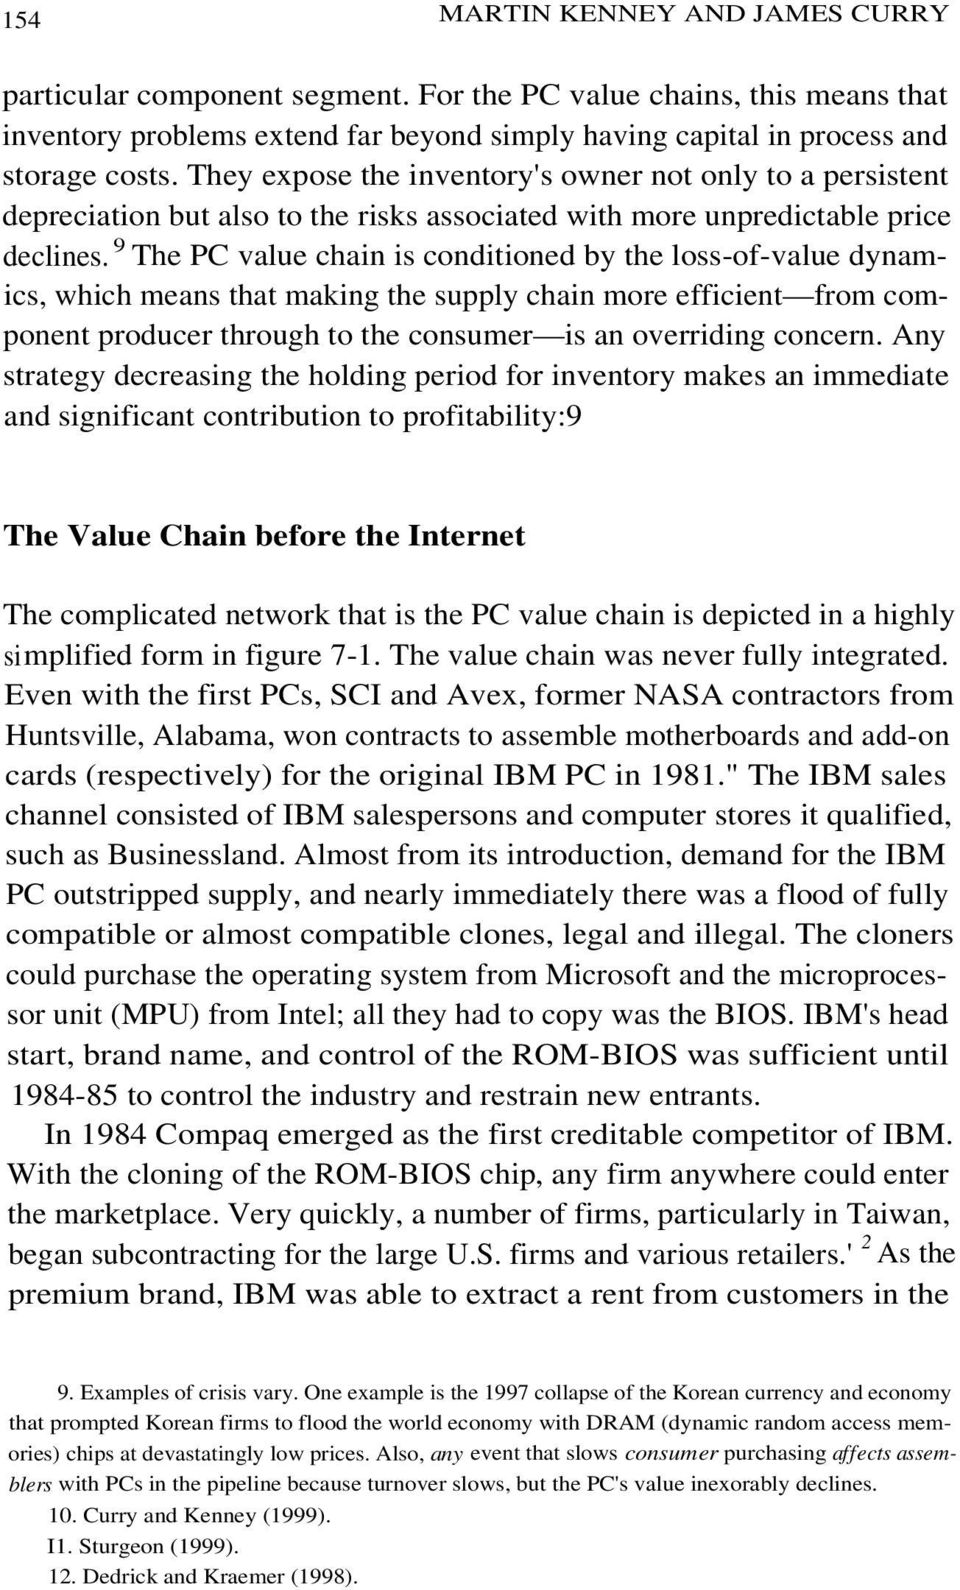 9 The PC value chain is conditioned by the loss-of-value dynamics, which means that making the supply chain more efficient from component producer through to the consumer is an overriding concern.